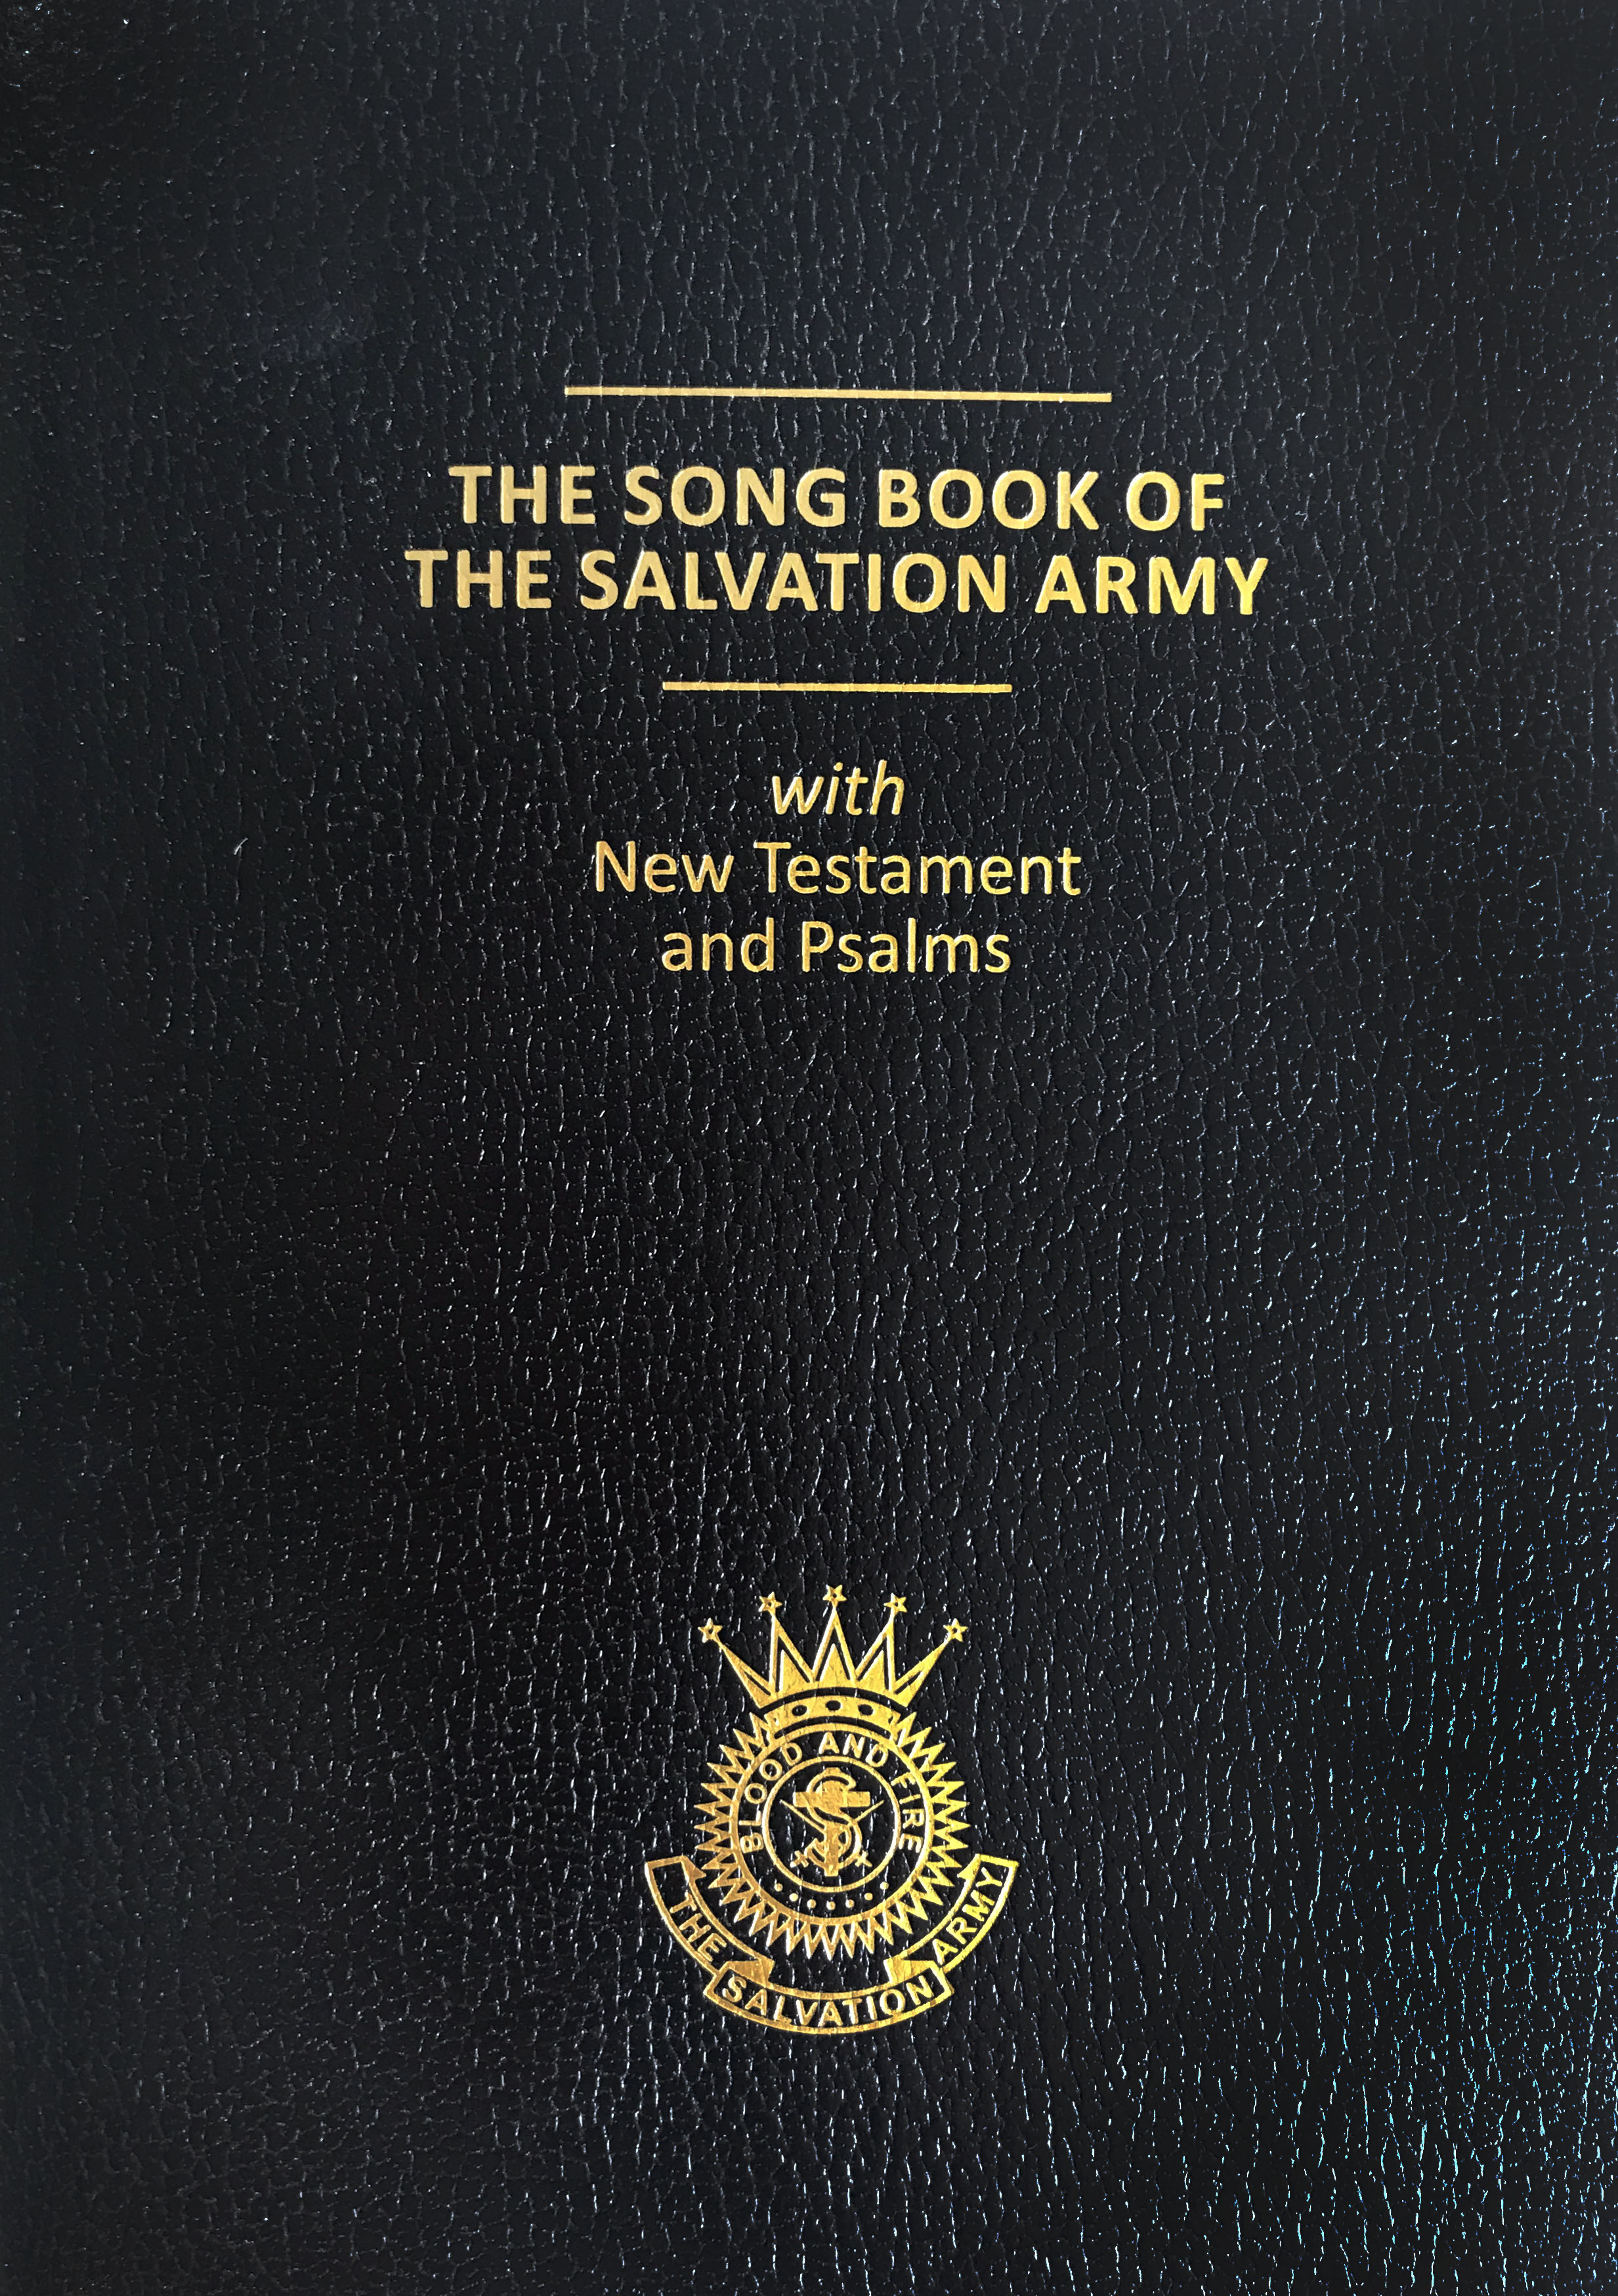 The Salvation Army Song Book